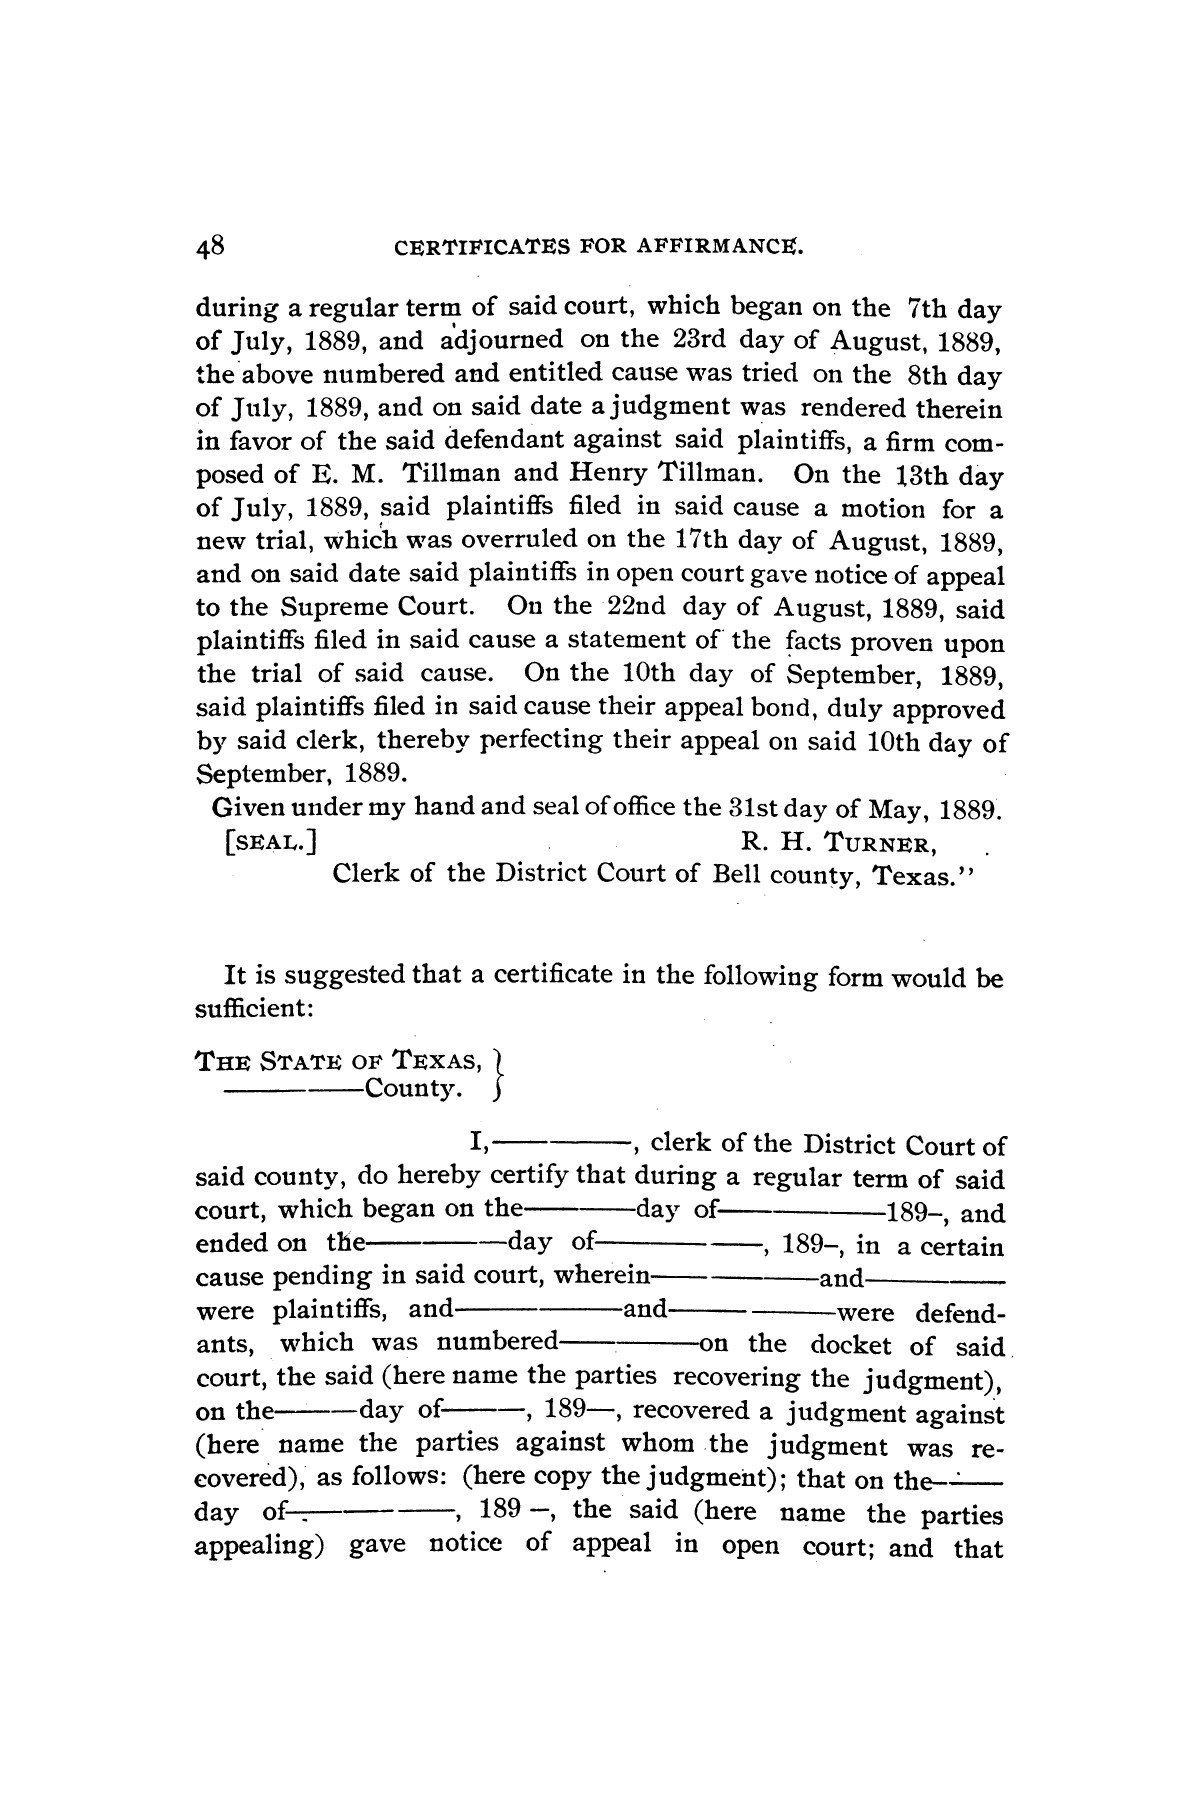 Rules for the courts of Texas: adopted by order of the Supreme Court at Tyler on the first day of December, A.D. 1877: together with amendments thereto at various times up to the close of the Austin term, A.D. 1890                                                                                                      [Sequence #]: 50 of 64